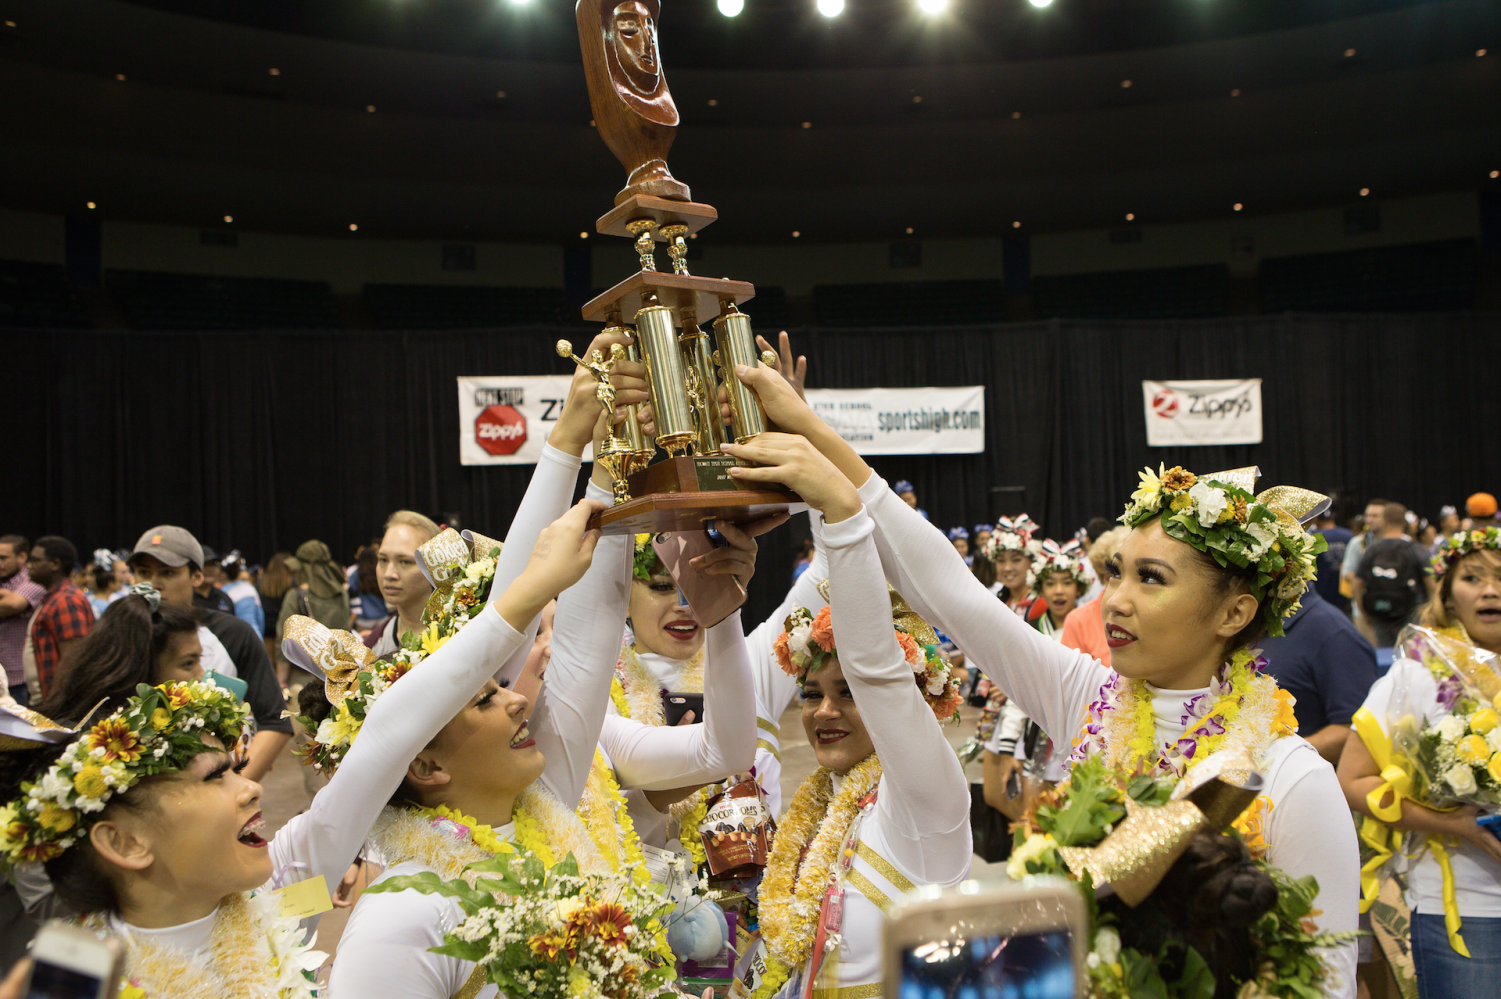 The Academy's varsity cheerleading team, also known as the Golden Girls, hold their trophy after winning first in the medium division. Photo courtesy of 808 Hot Shots.